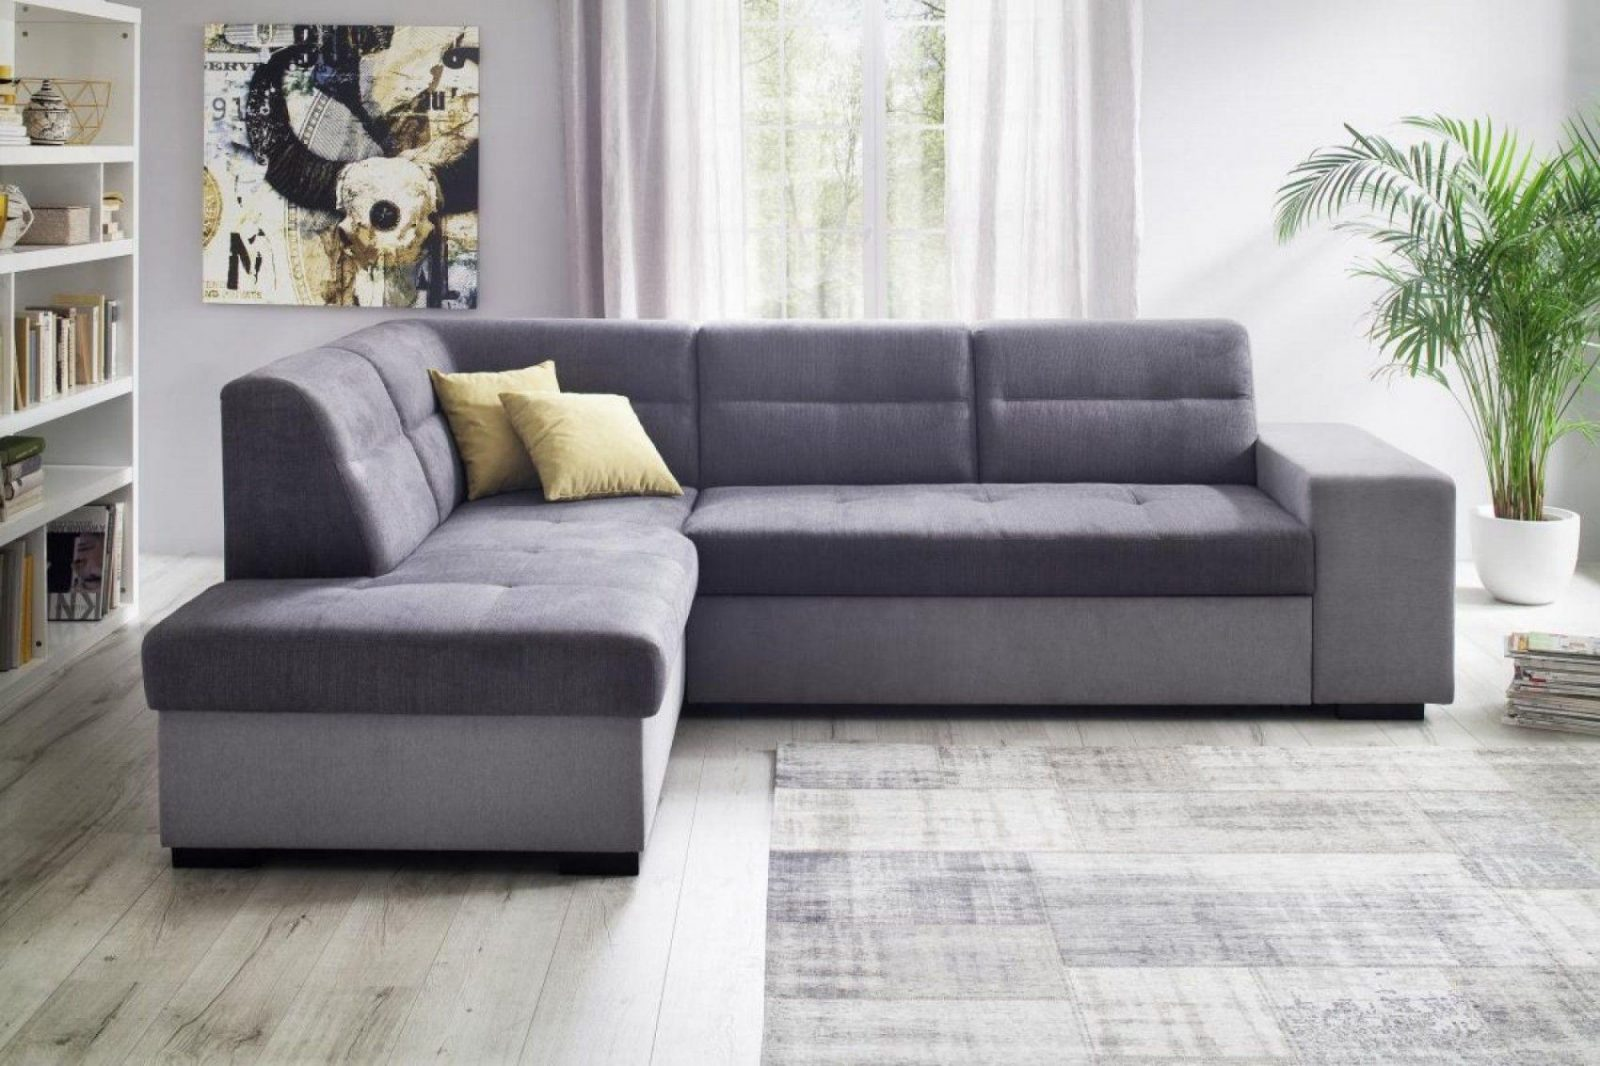 Big Sofa Xxl Poco Longchair Couch Stunning Longchair Couch With von Big Sofa Xxl Poco Photo